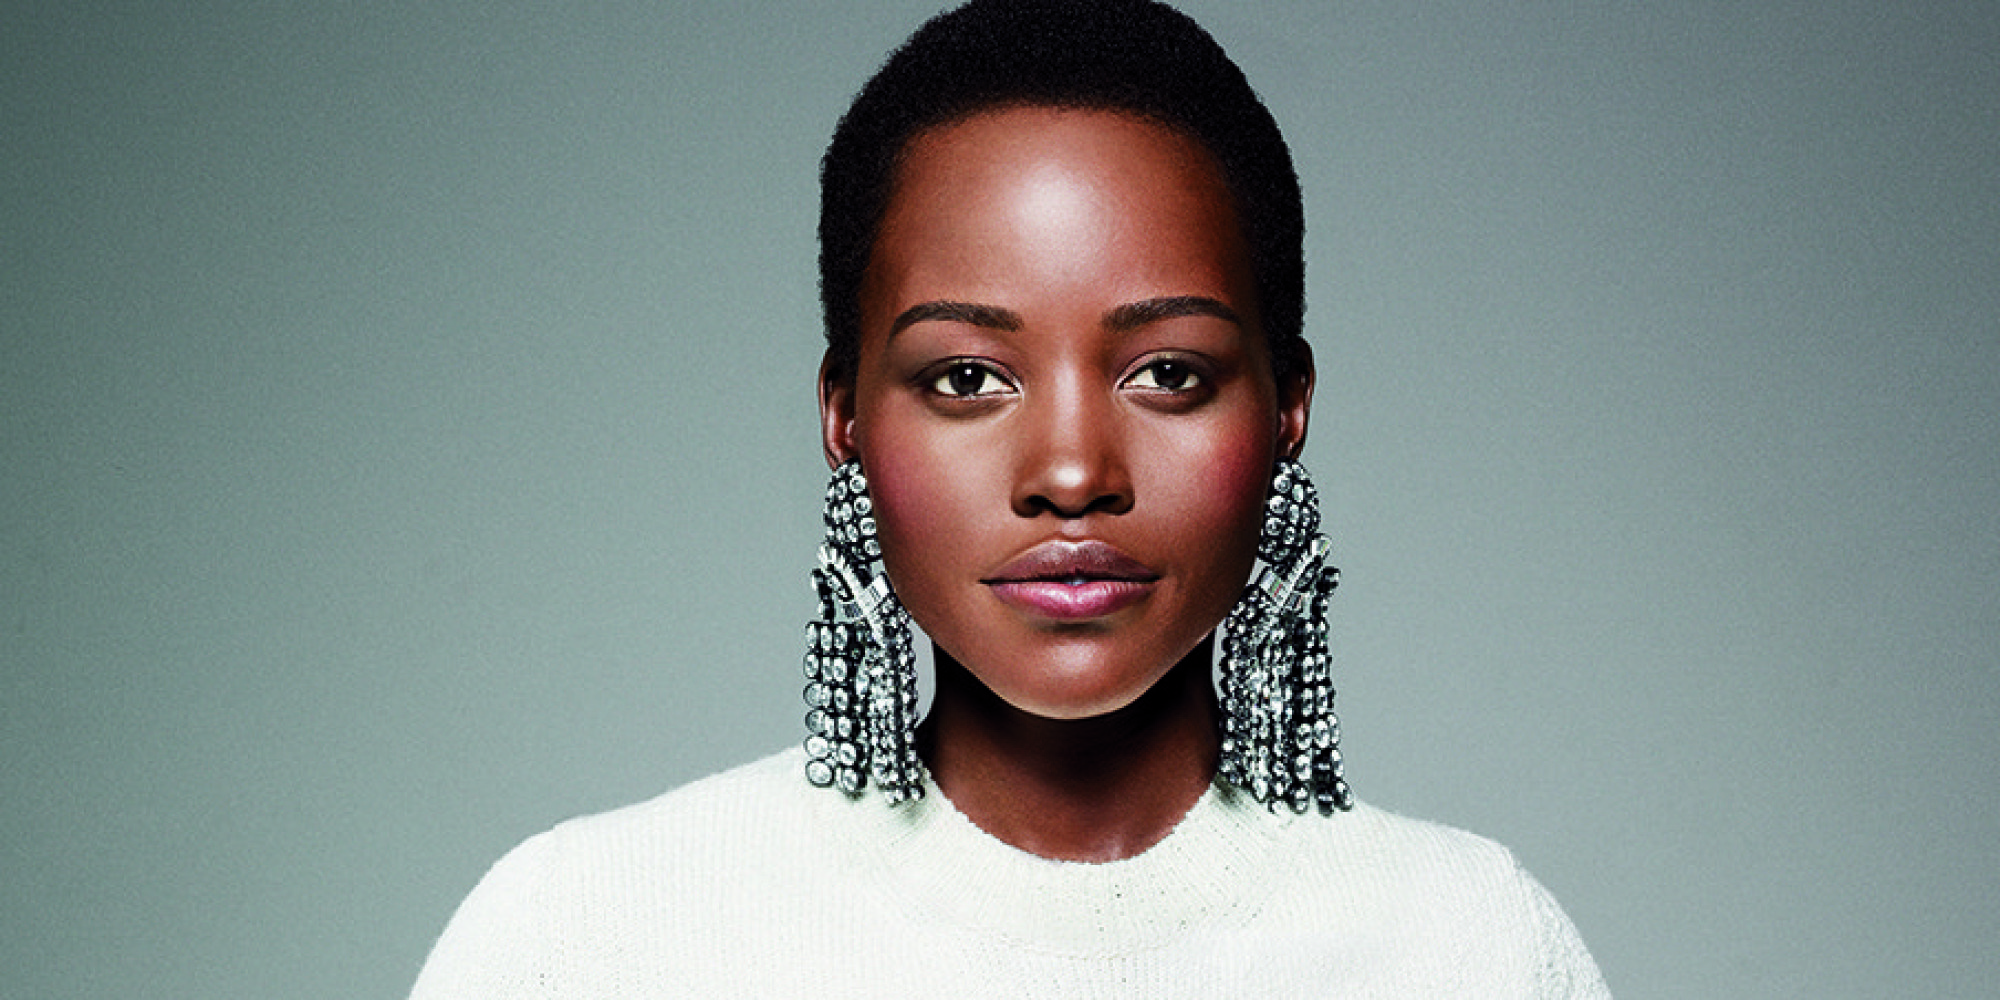 Latest tweef between Kenyans and Nigerians caused by Lupita Nyong'o's new acting role in Americanah